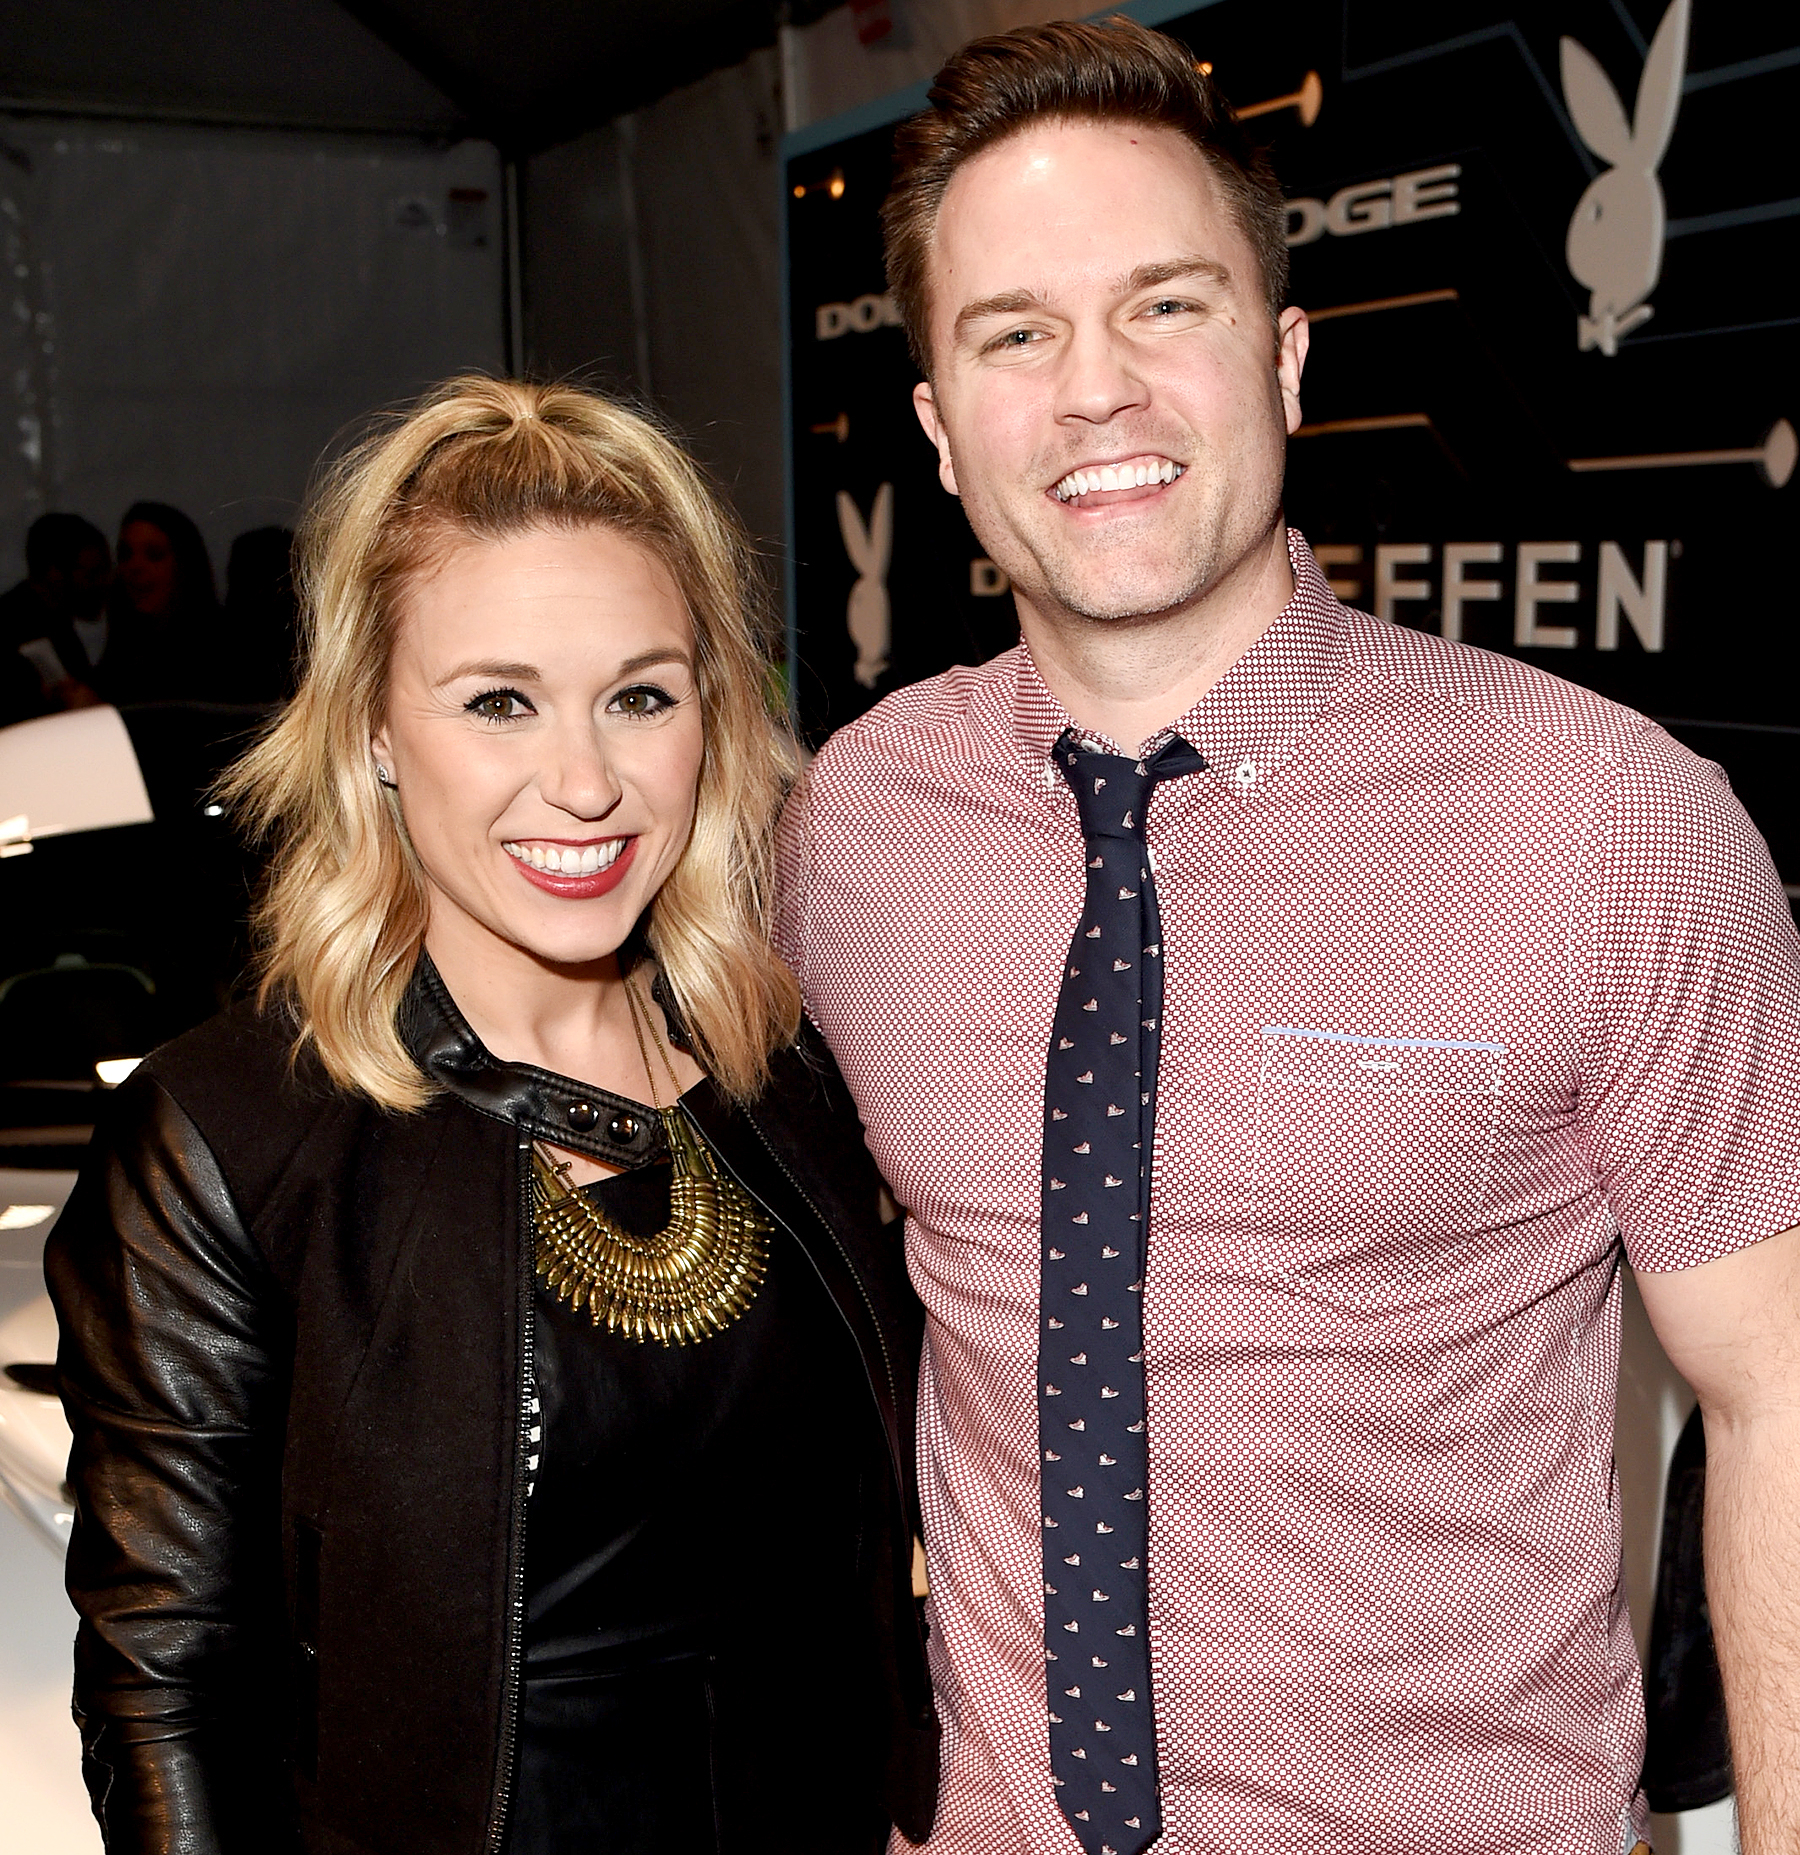 Kelsey Mayfield and Scott Porter arrive at The Playboy Party during Super Bowl Weekend, which celebrated the future of Playboy and its newly redesigned magazine in a transformed space within Lot A of AT&T Park on February 5, 2016 in San Francisco, California.